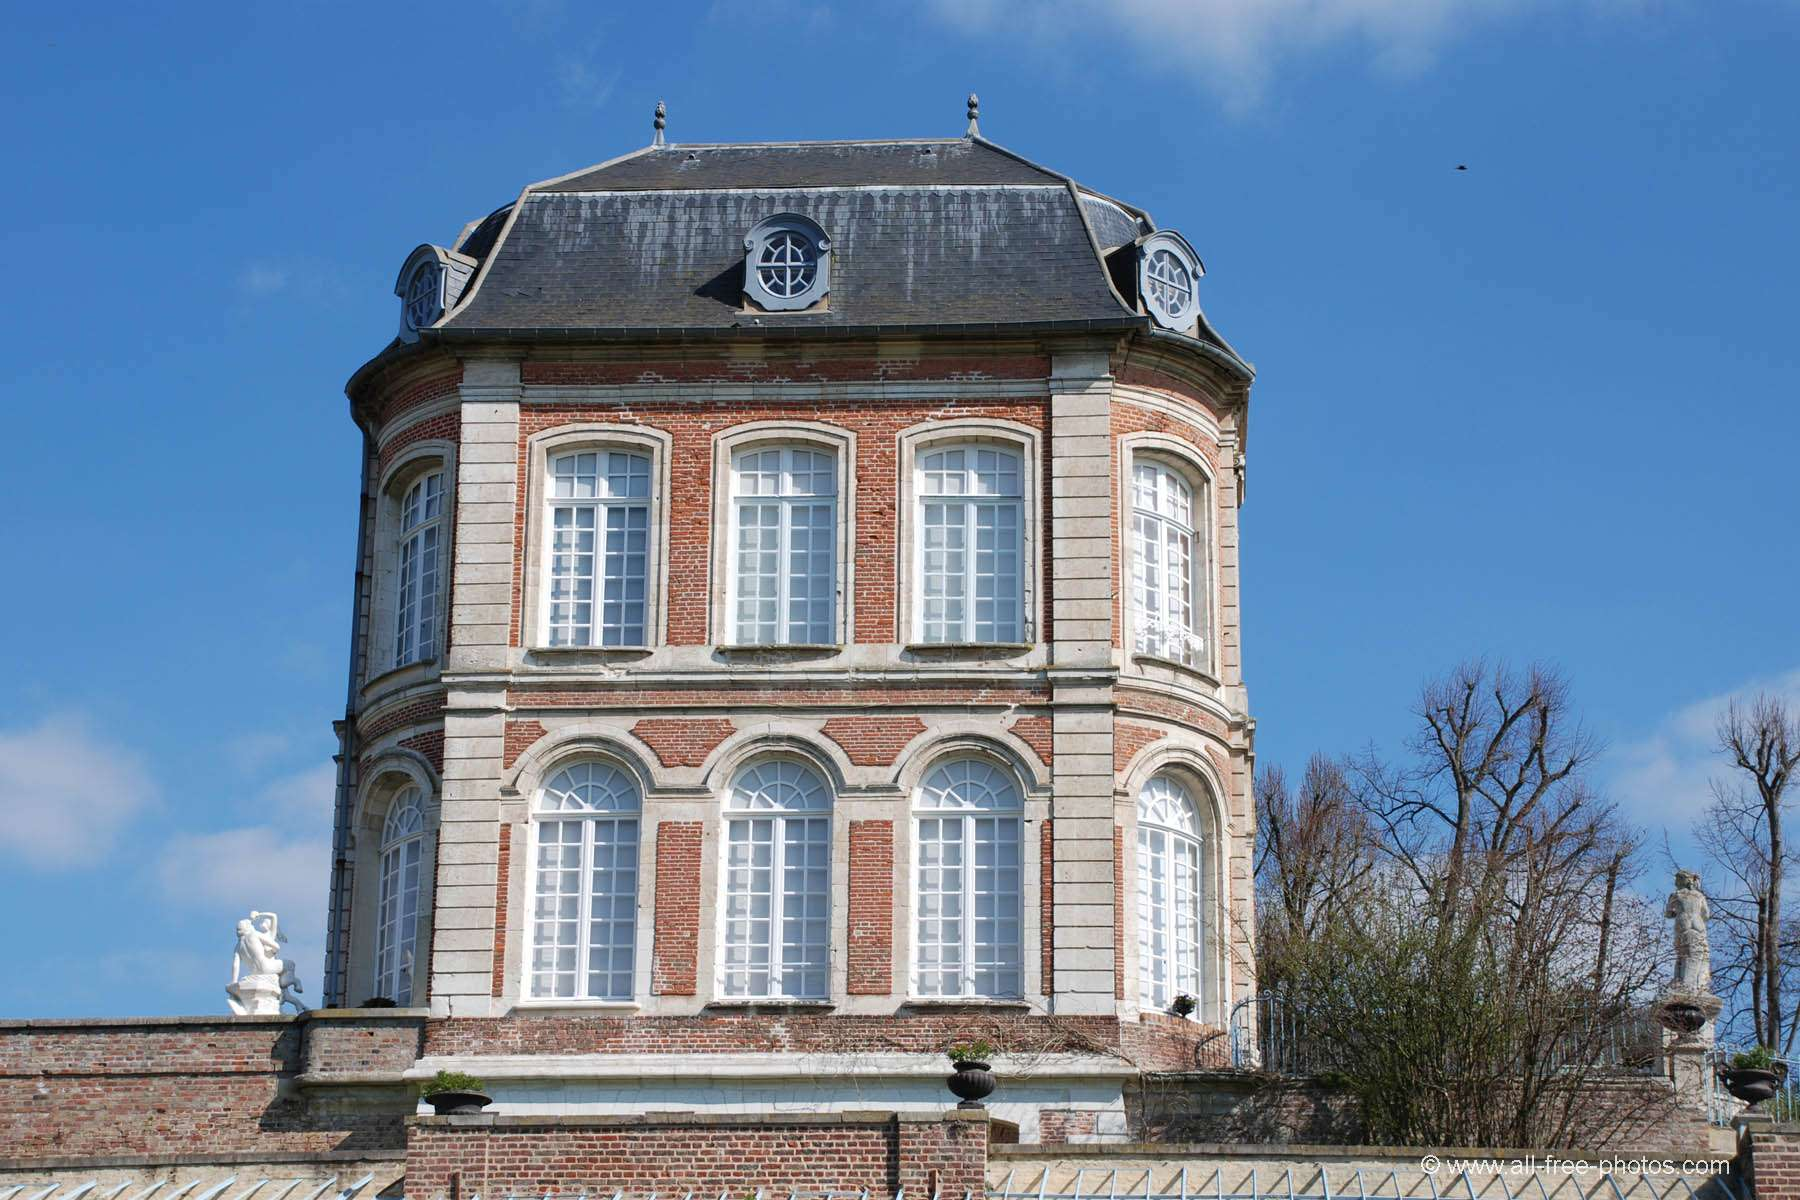 Castle of Long - France